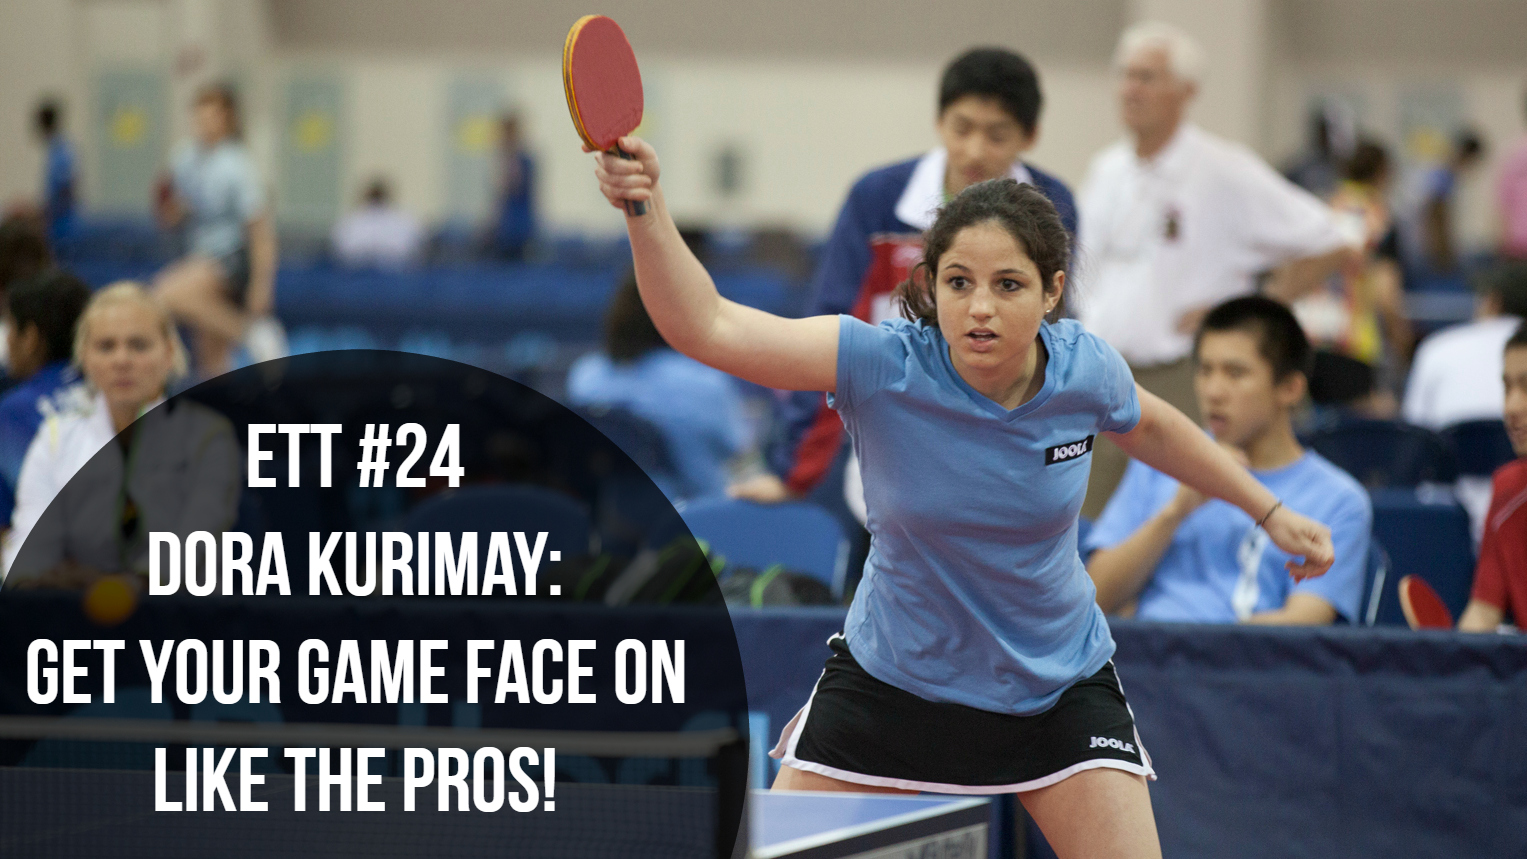 #24 – Dora Kurimay: Get Your Game Face On Like The Pros!